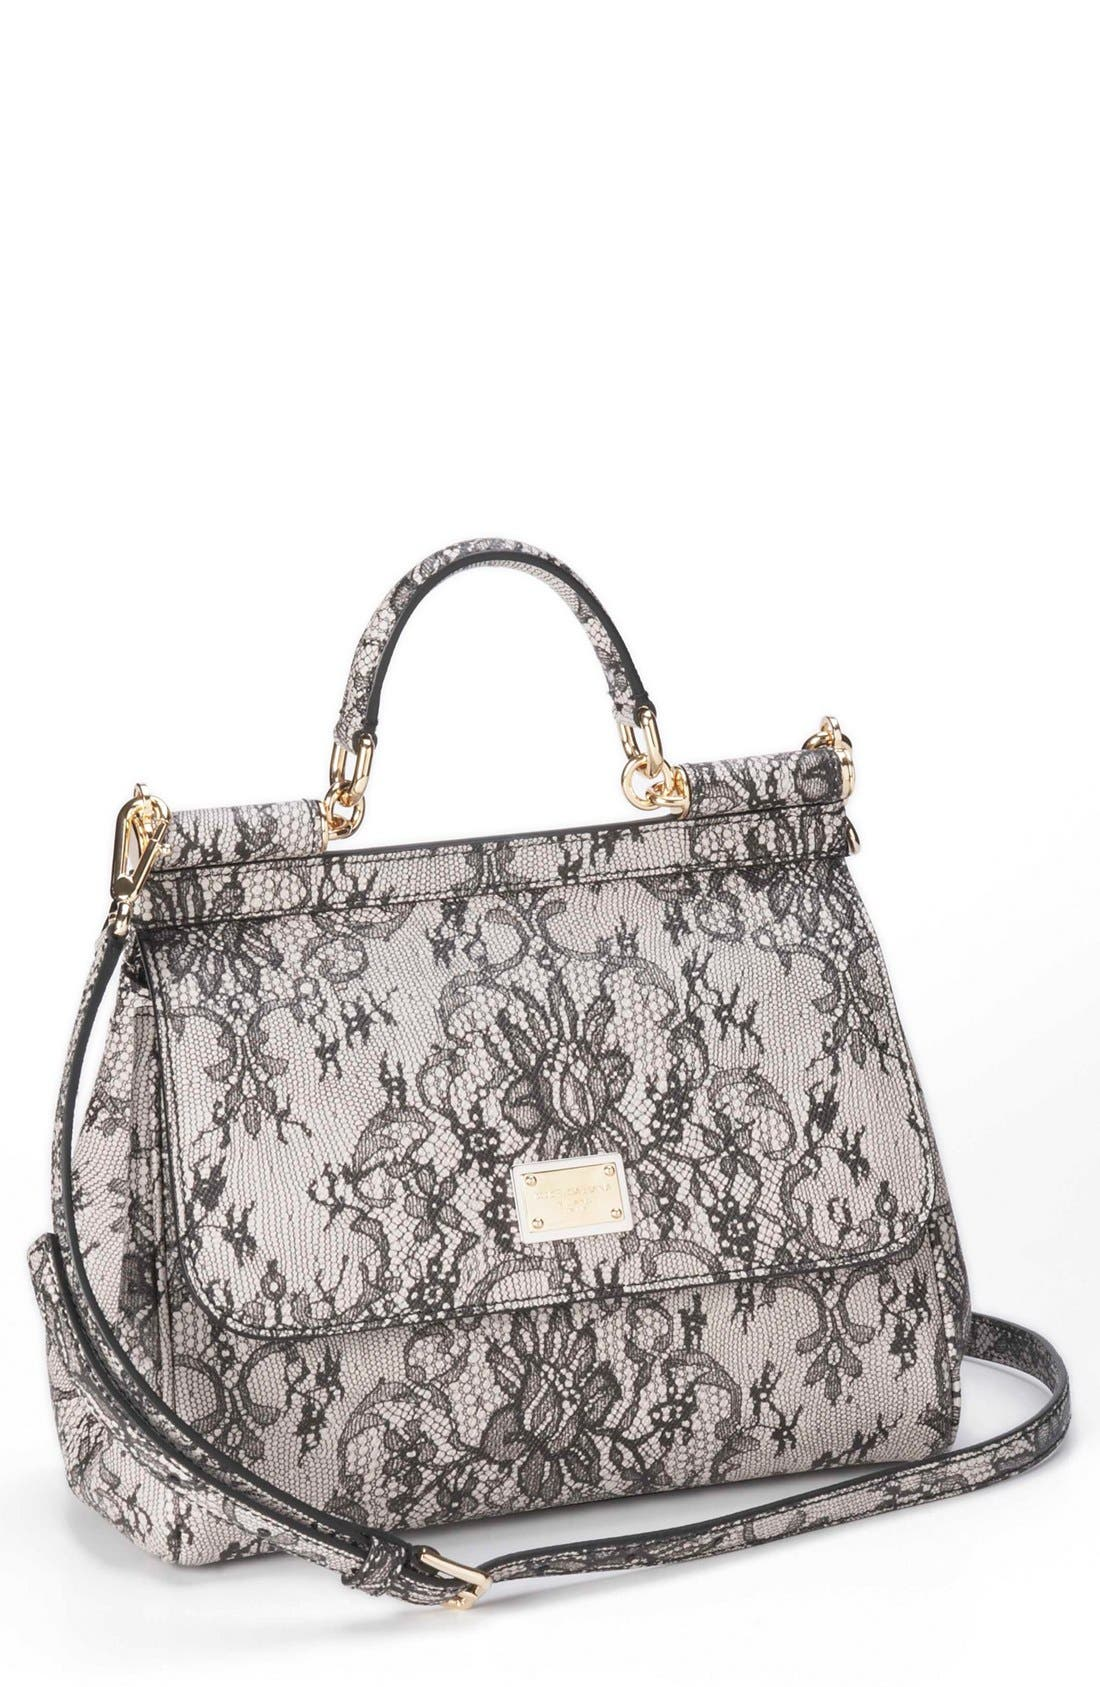 Main Image - Dolce&Gabbana 'Miss Sicily - Printed Lace' Top Handle Leather Satchel, Small